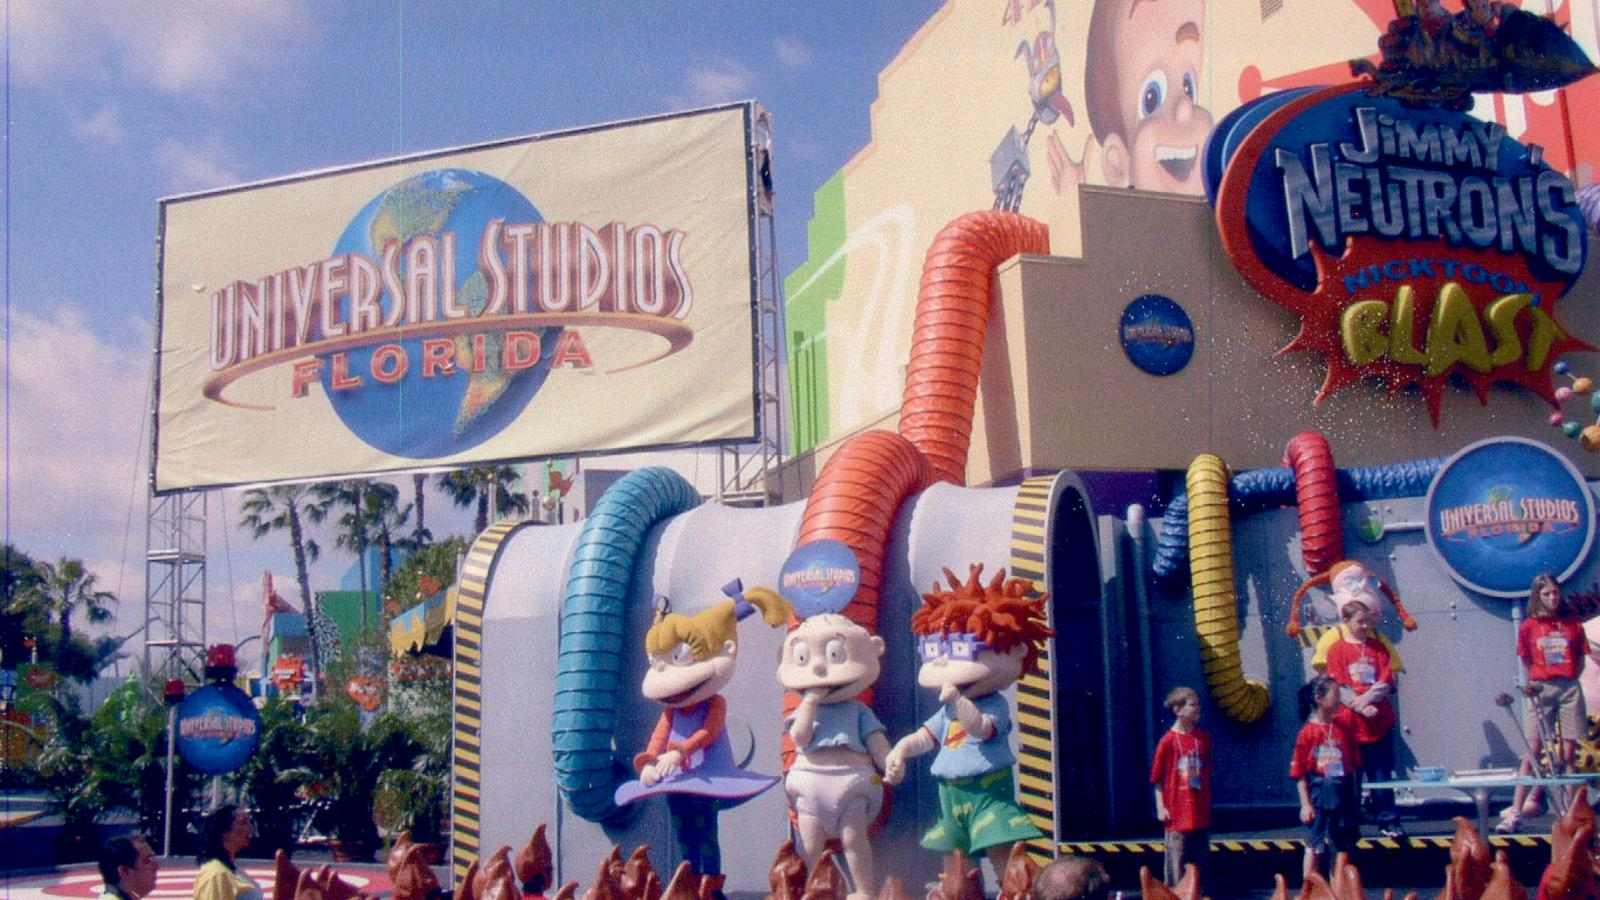 National Museum of Education, Jimmy Neutron Competition, Universal Studios